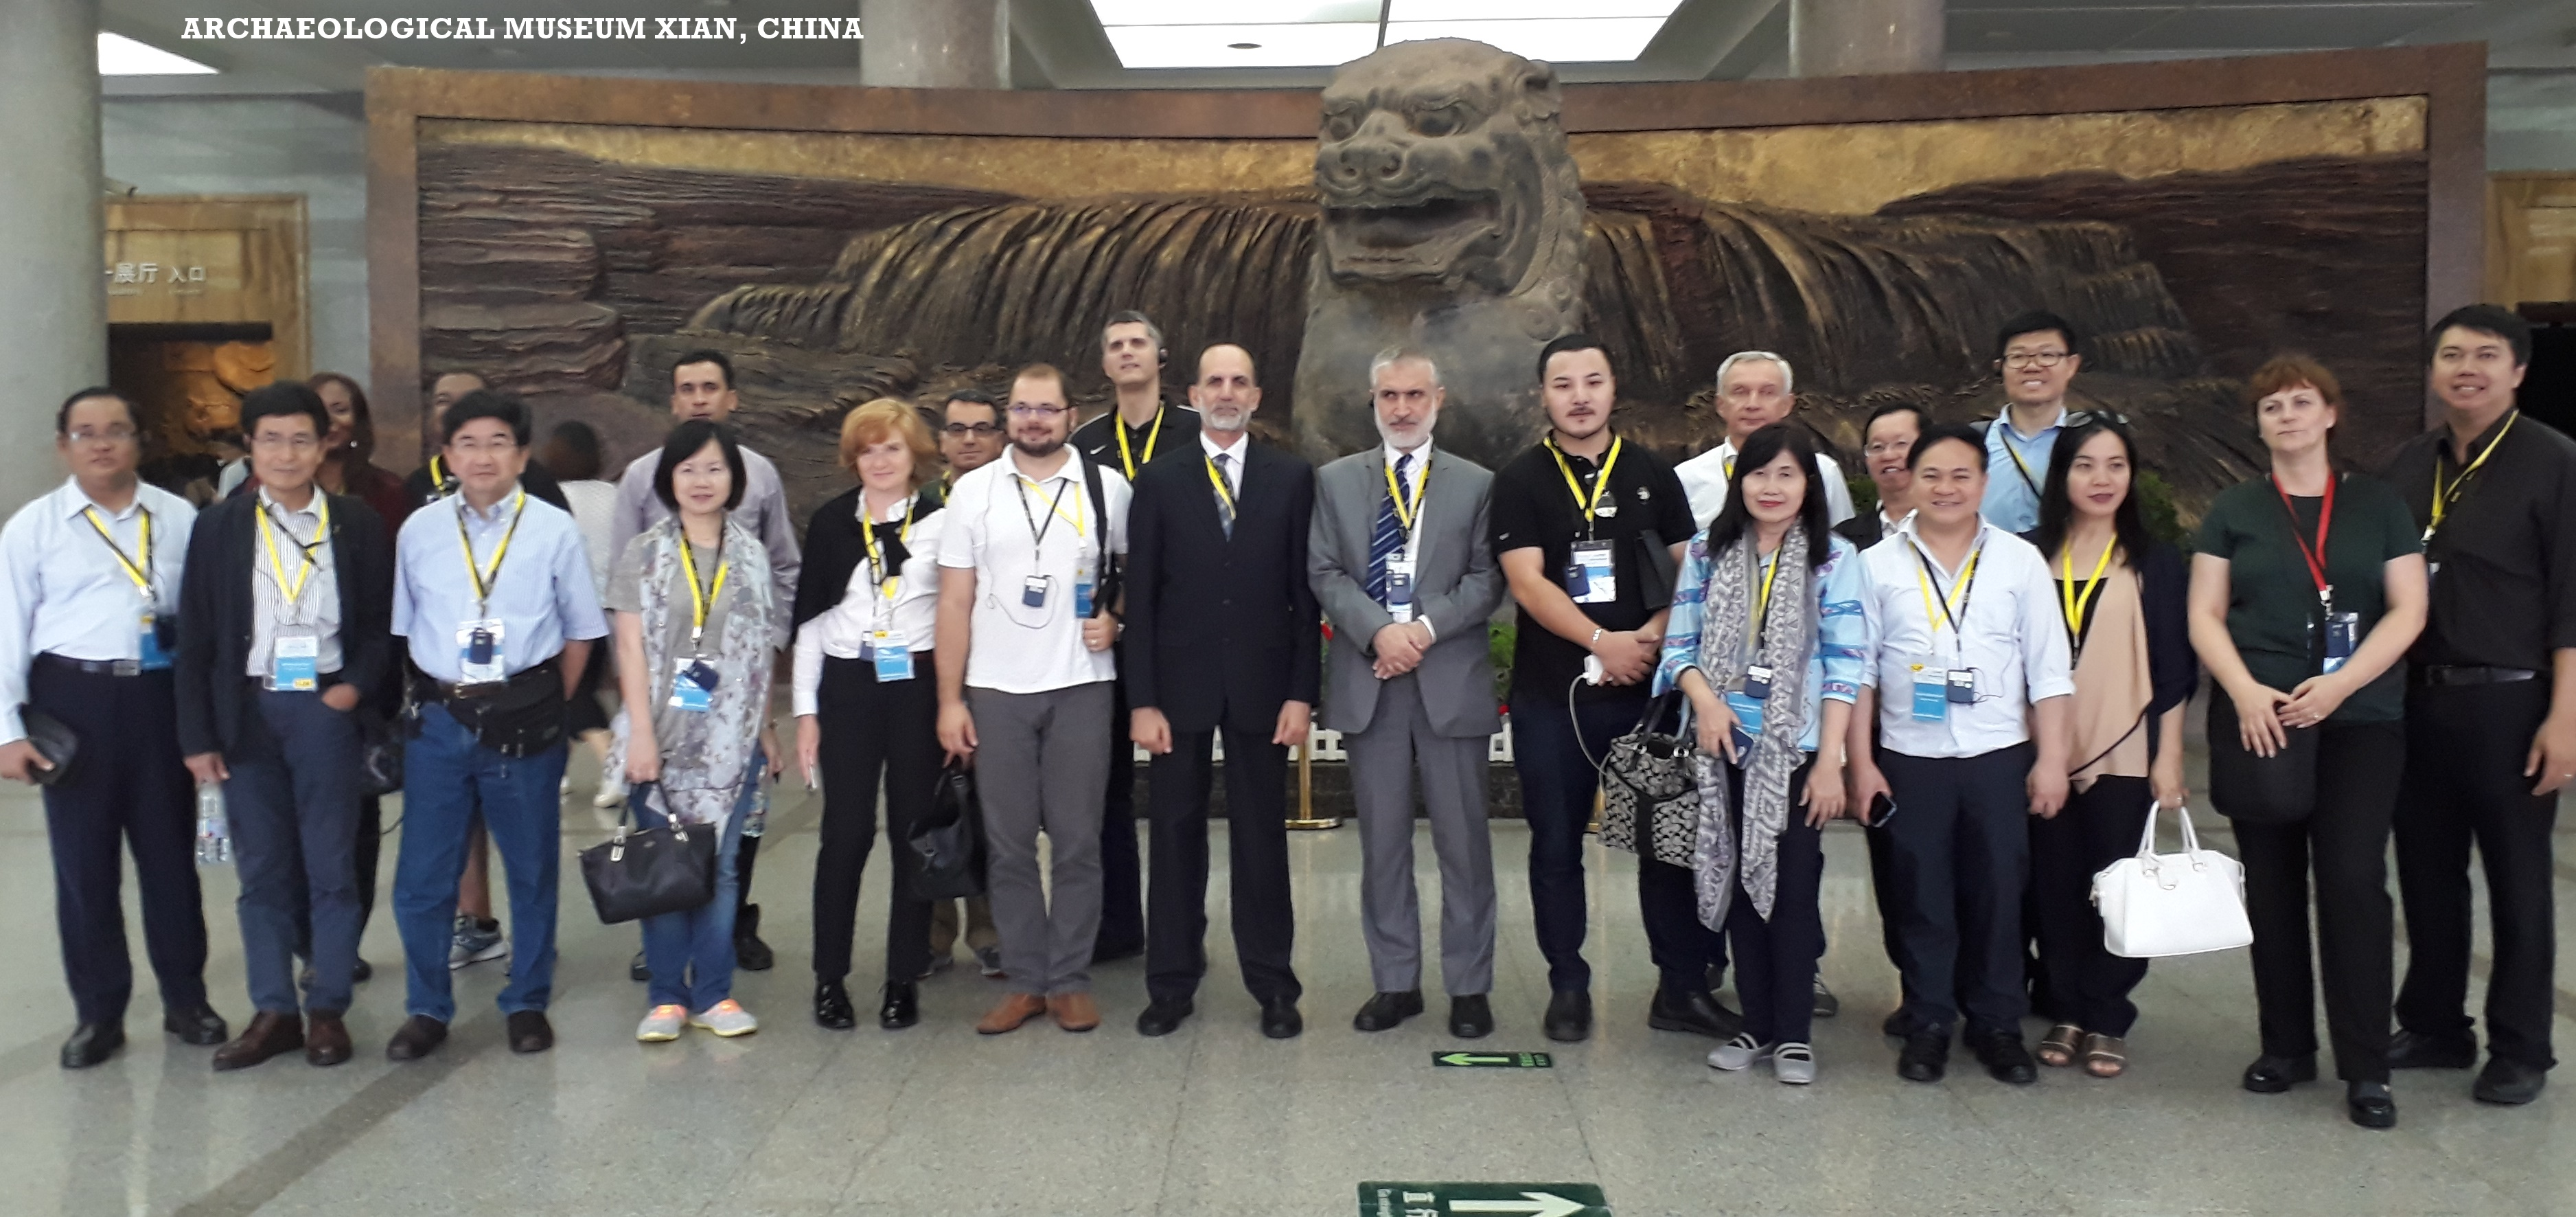 ONE BELT FORUM PARTICIPANTS IN XIAN MUSEUM